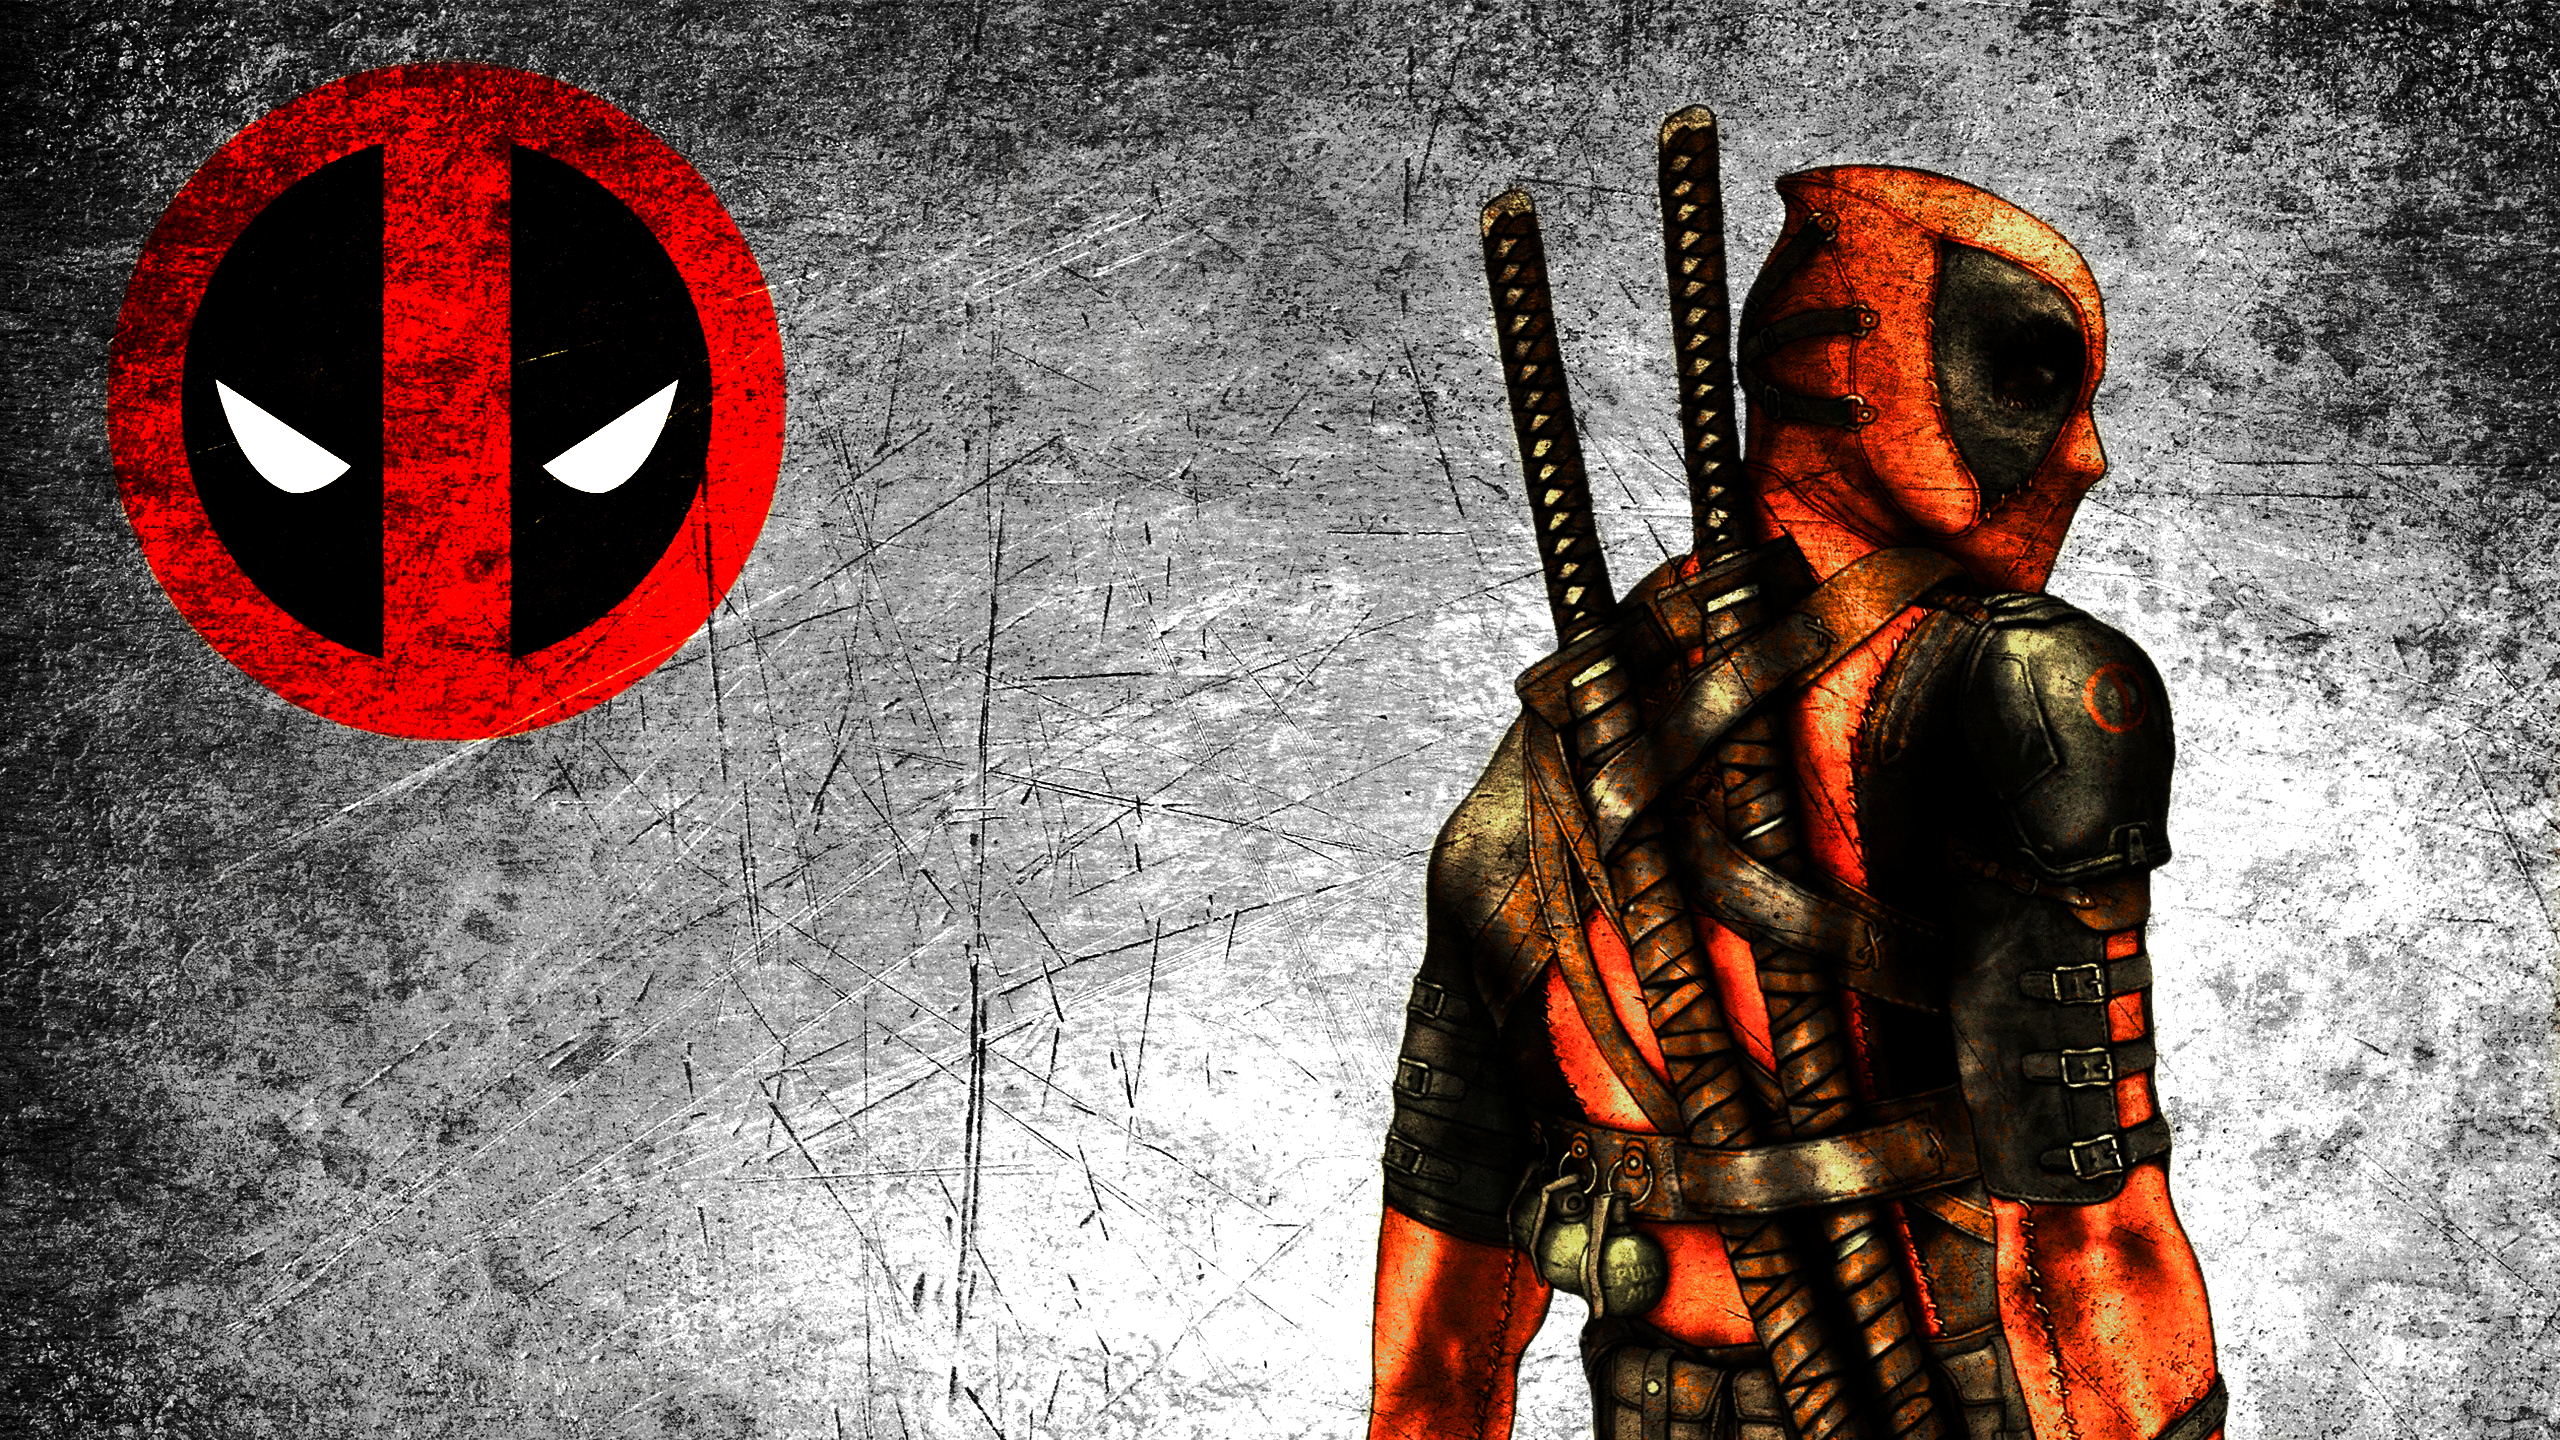 deadpool marvel comics desktop background pc hd wallpaper